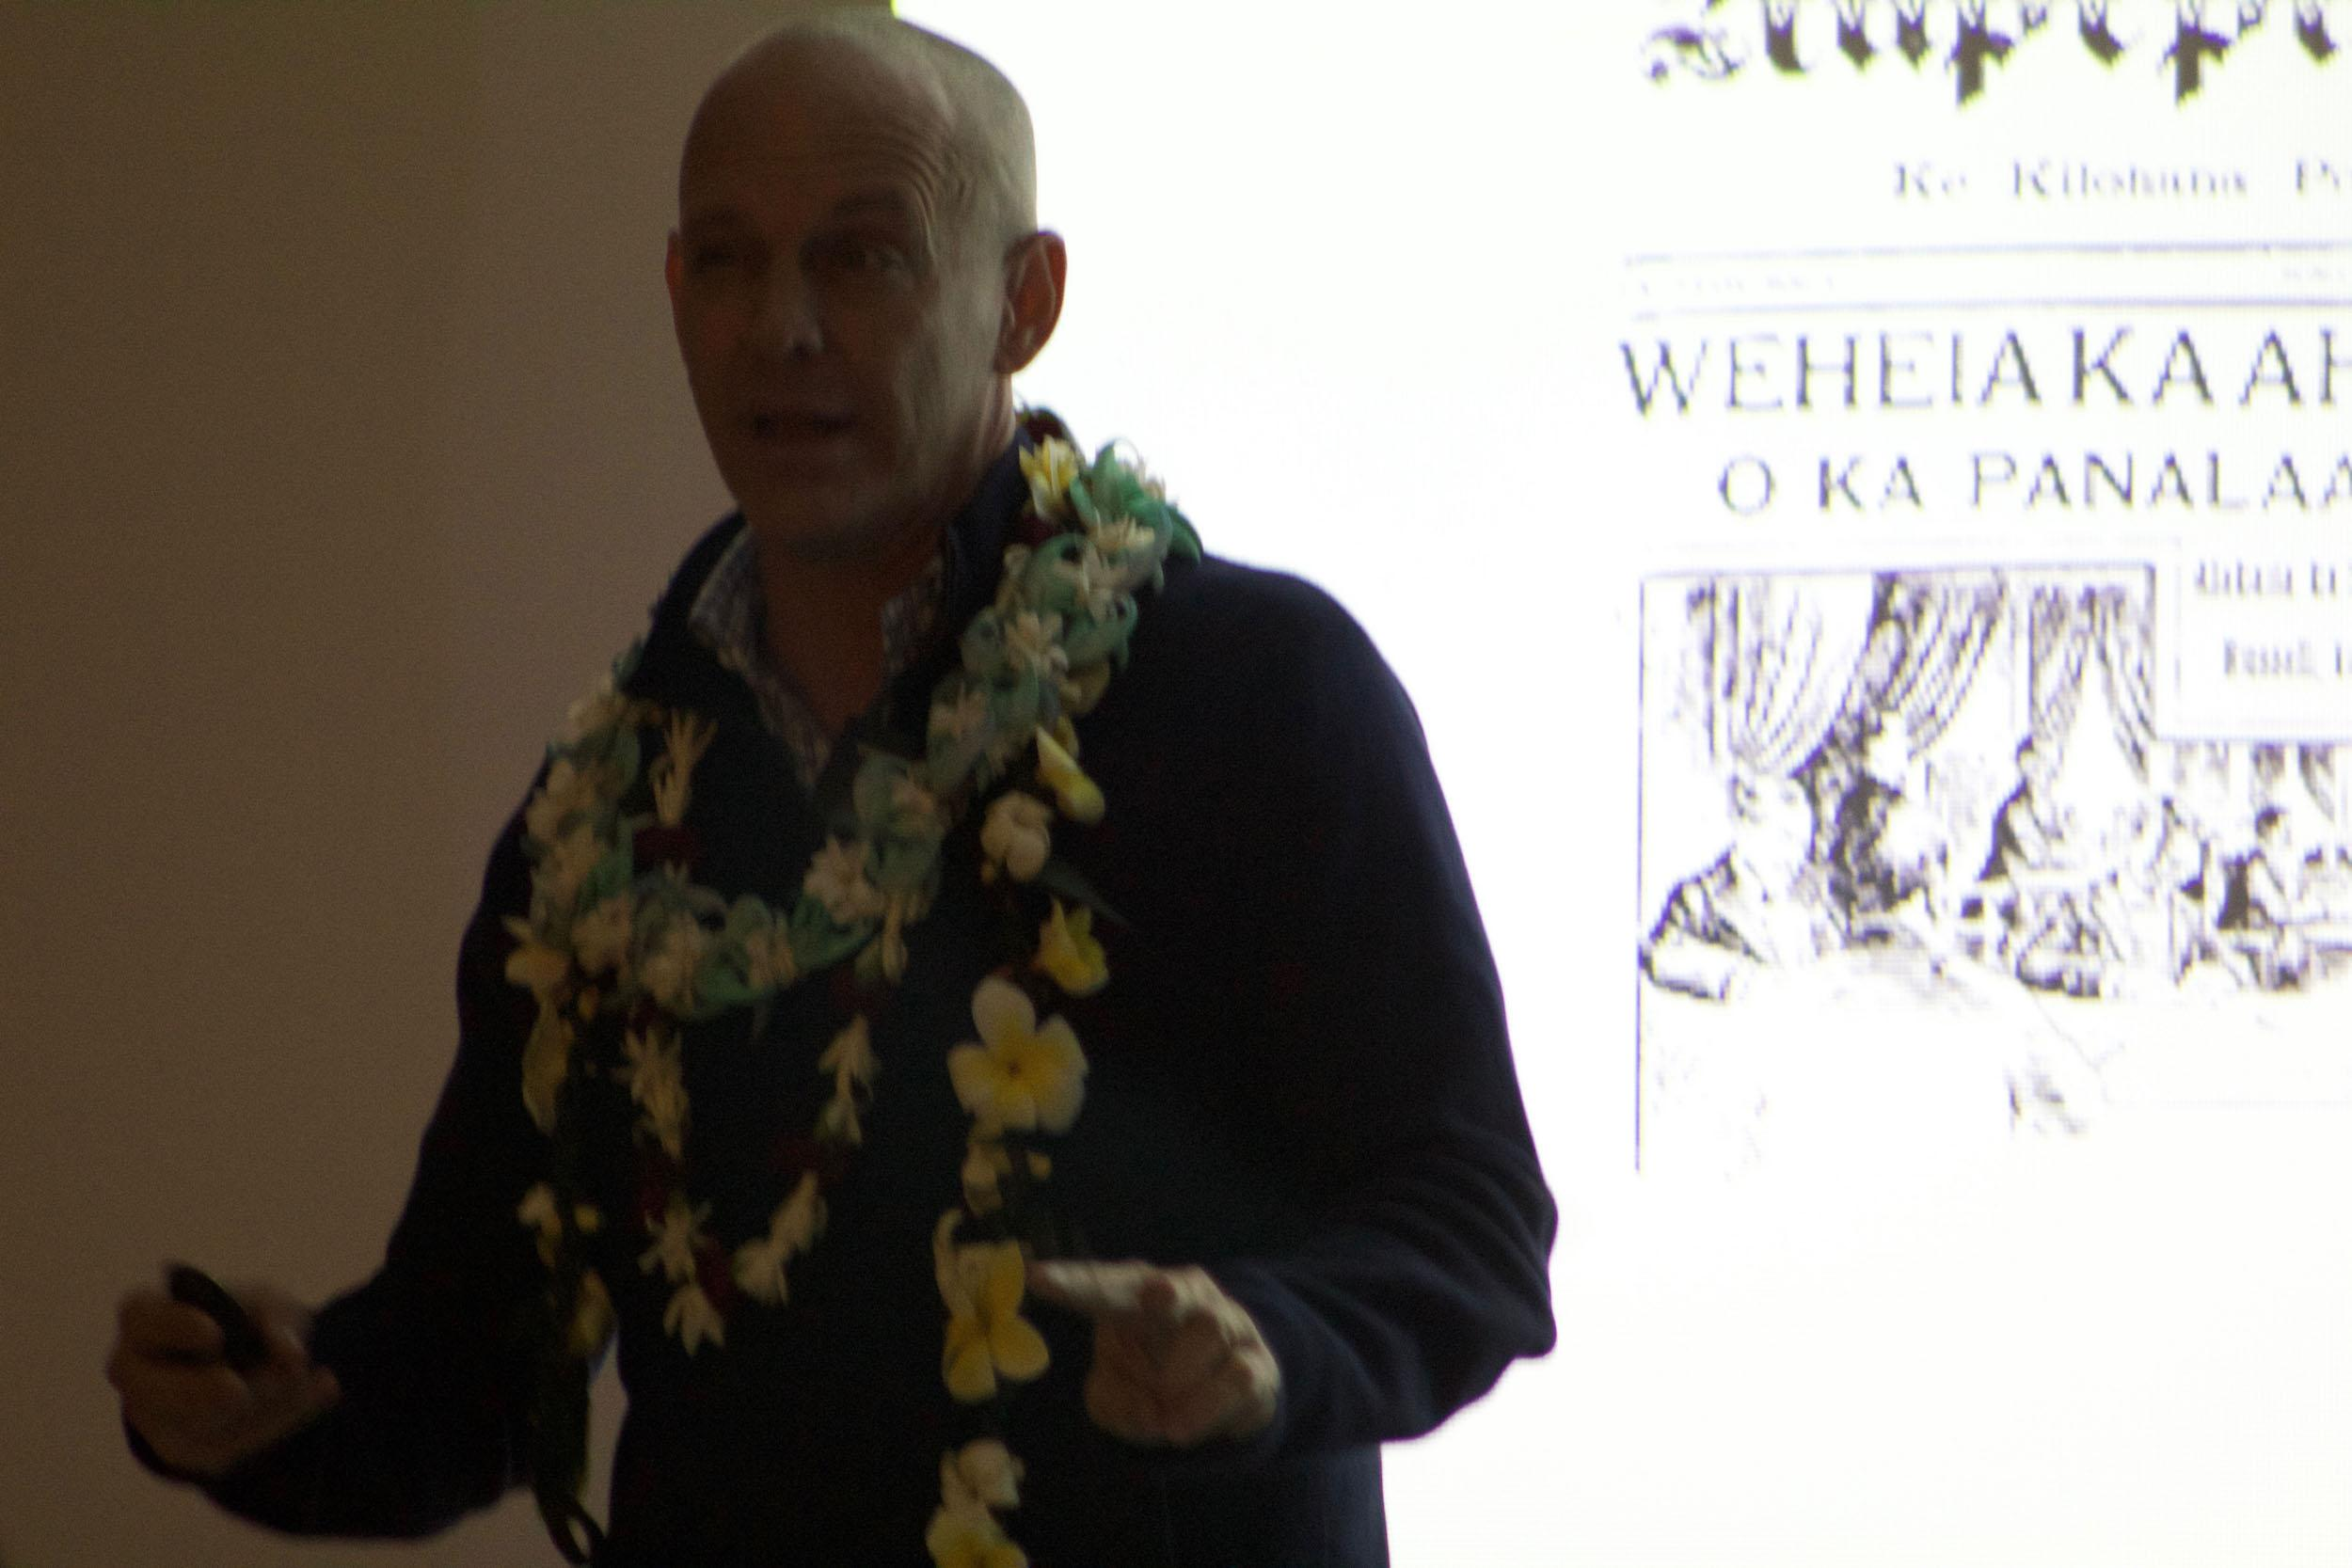 Dr. Ronald Williams Jr. presents the issue of Hawaiian history being told by non-Hawaiians. The one hour speech covered many individuals who stood up for their lāhui, as well as individuals who put down the lāhui.